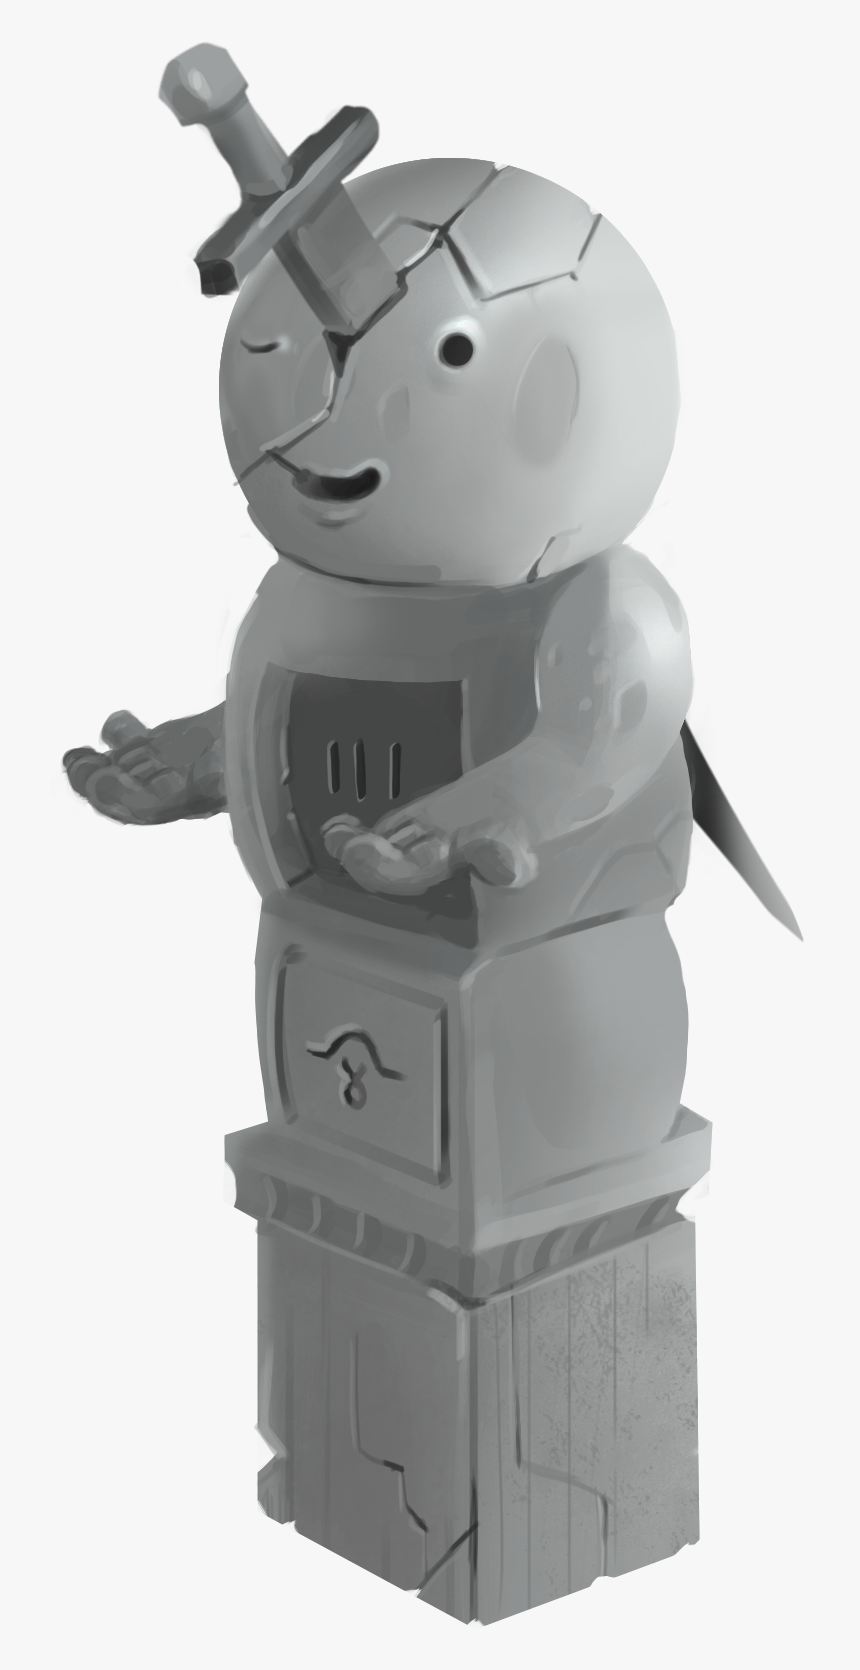 The-sword - Figurine - Figurine, HD Png Download, Free Download